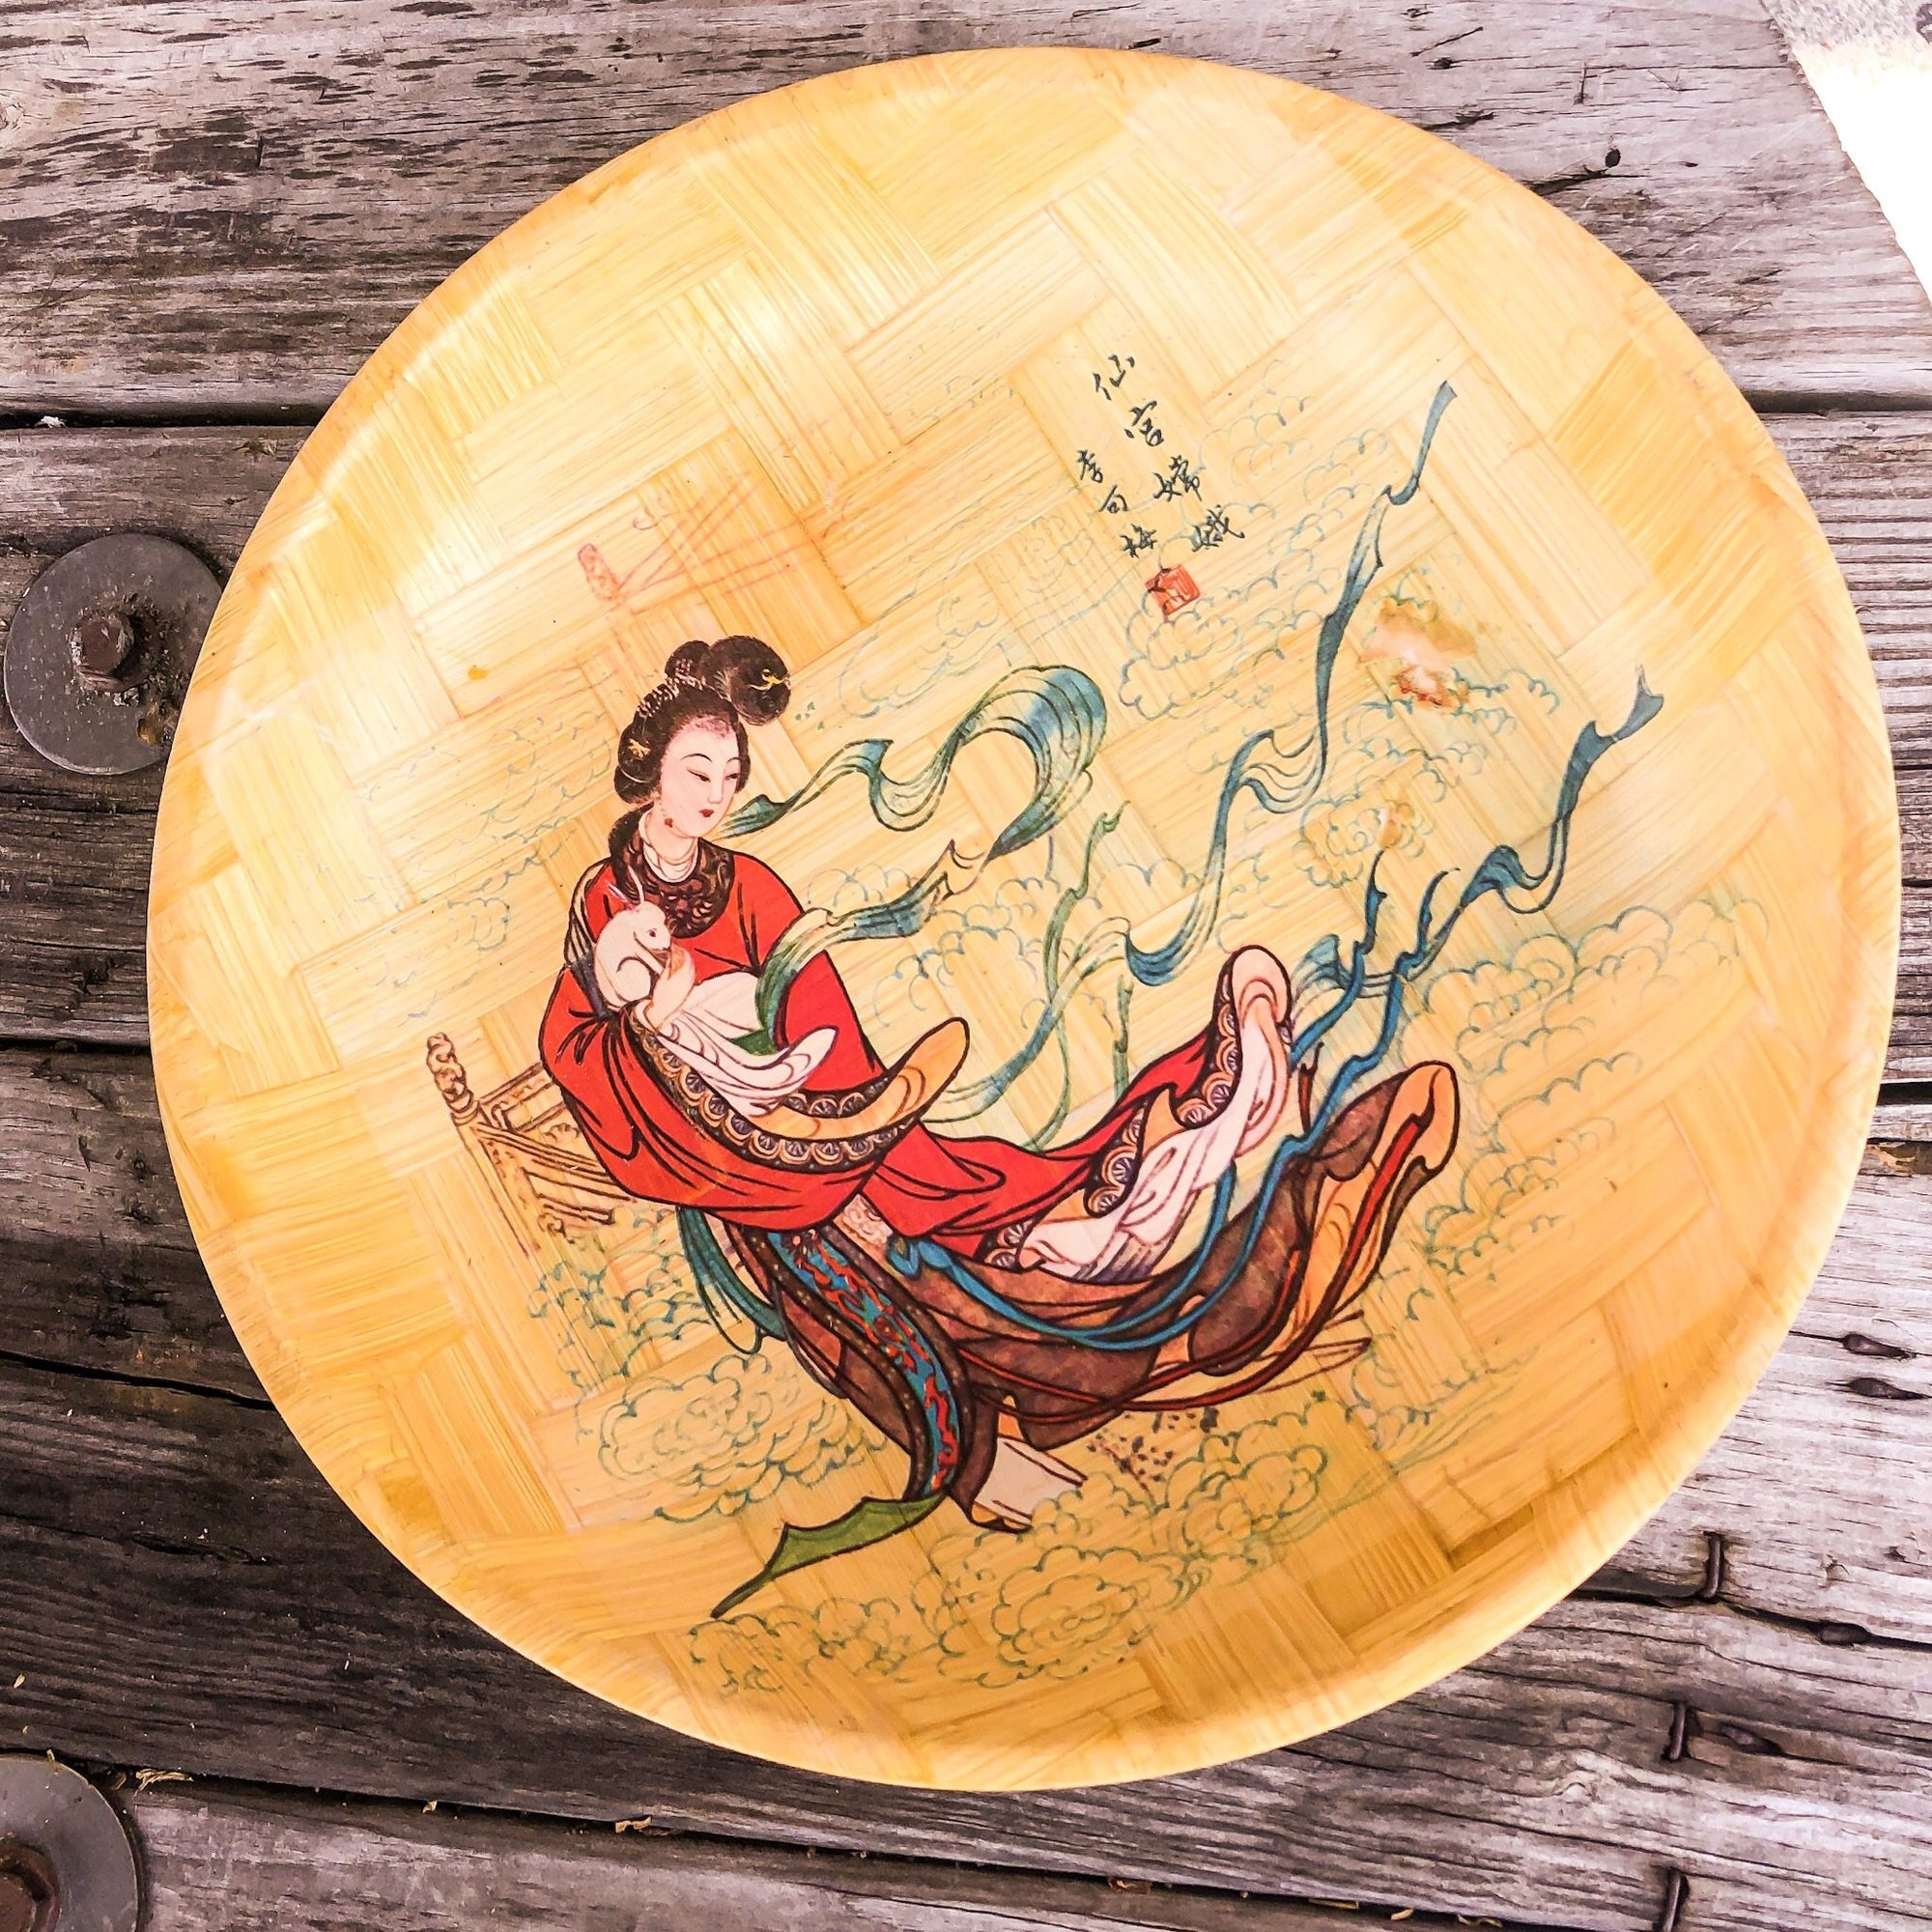 1960's Vintage Bamboo Plate, Bowl and Tray - Walking Pants Curiosities